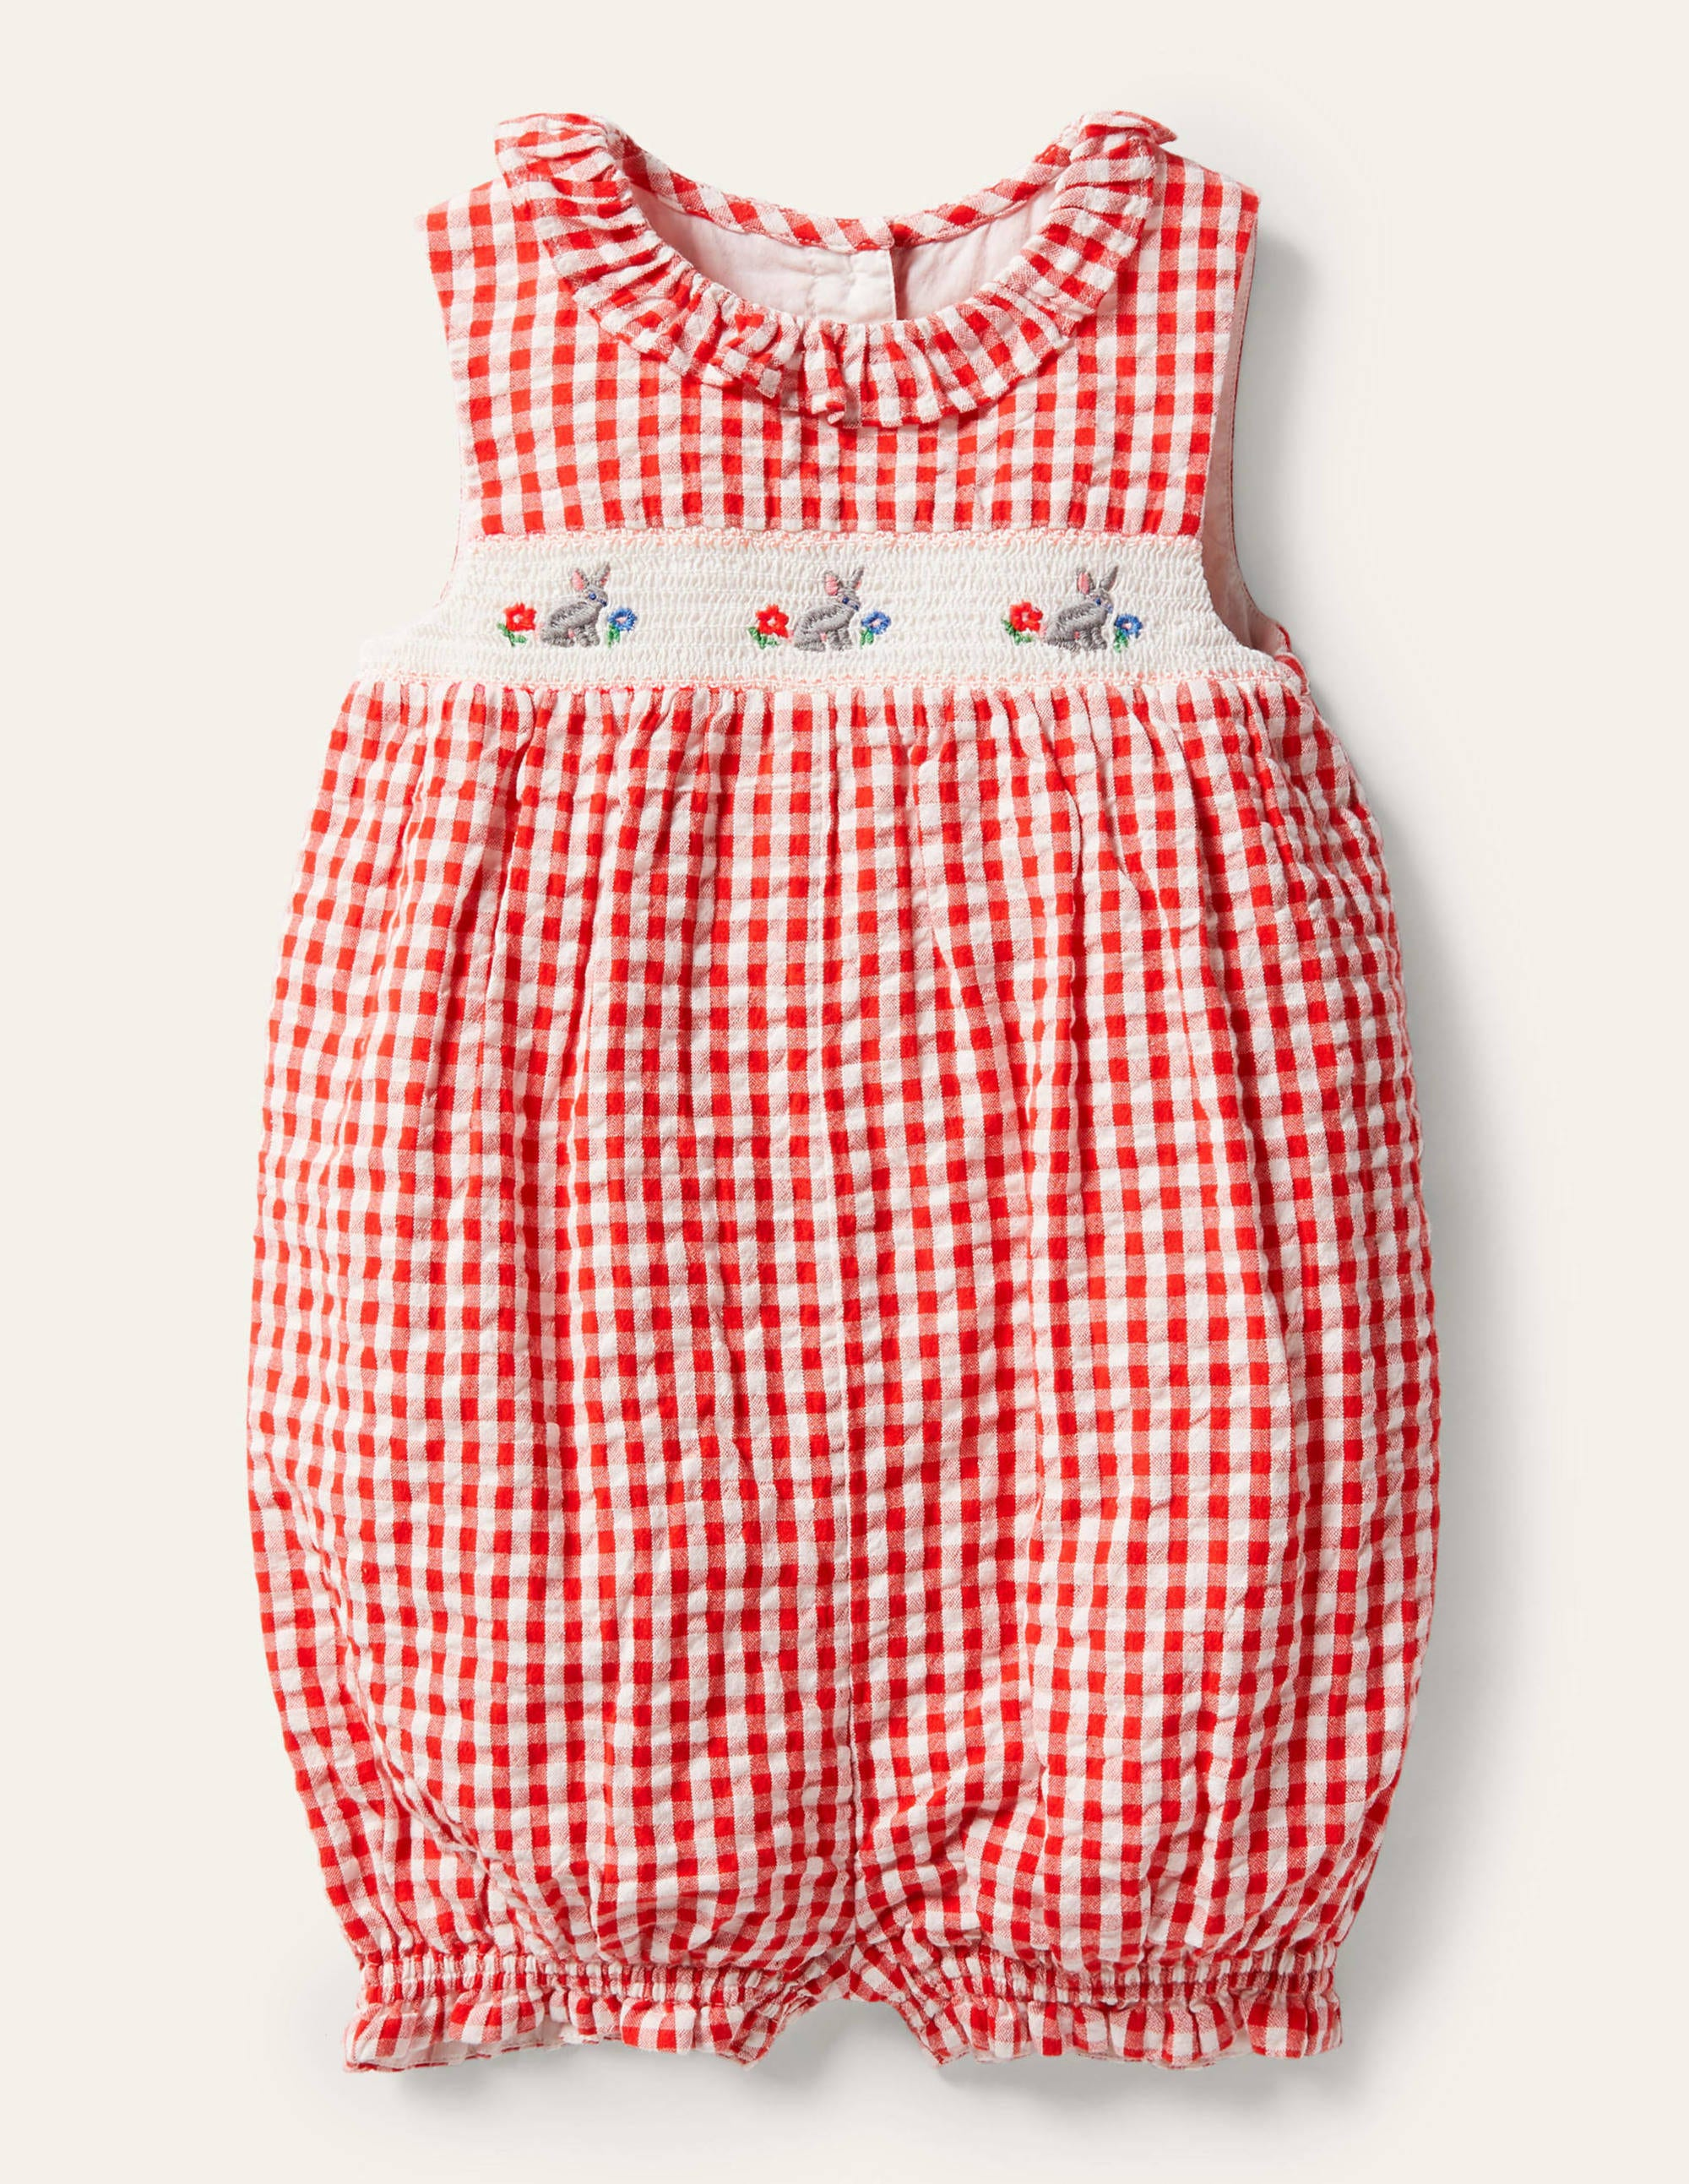 Vintage 1970s tiered gingham check strawberry skirt